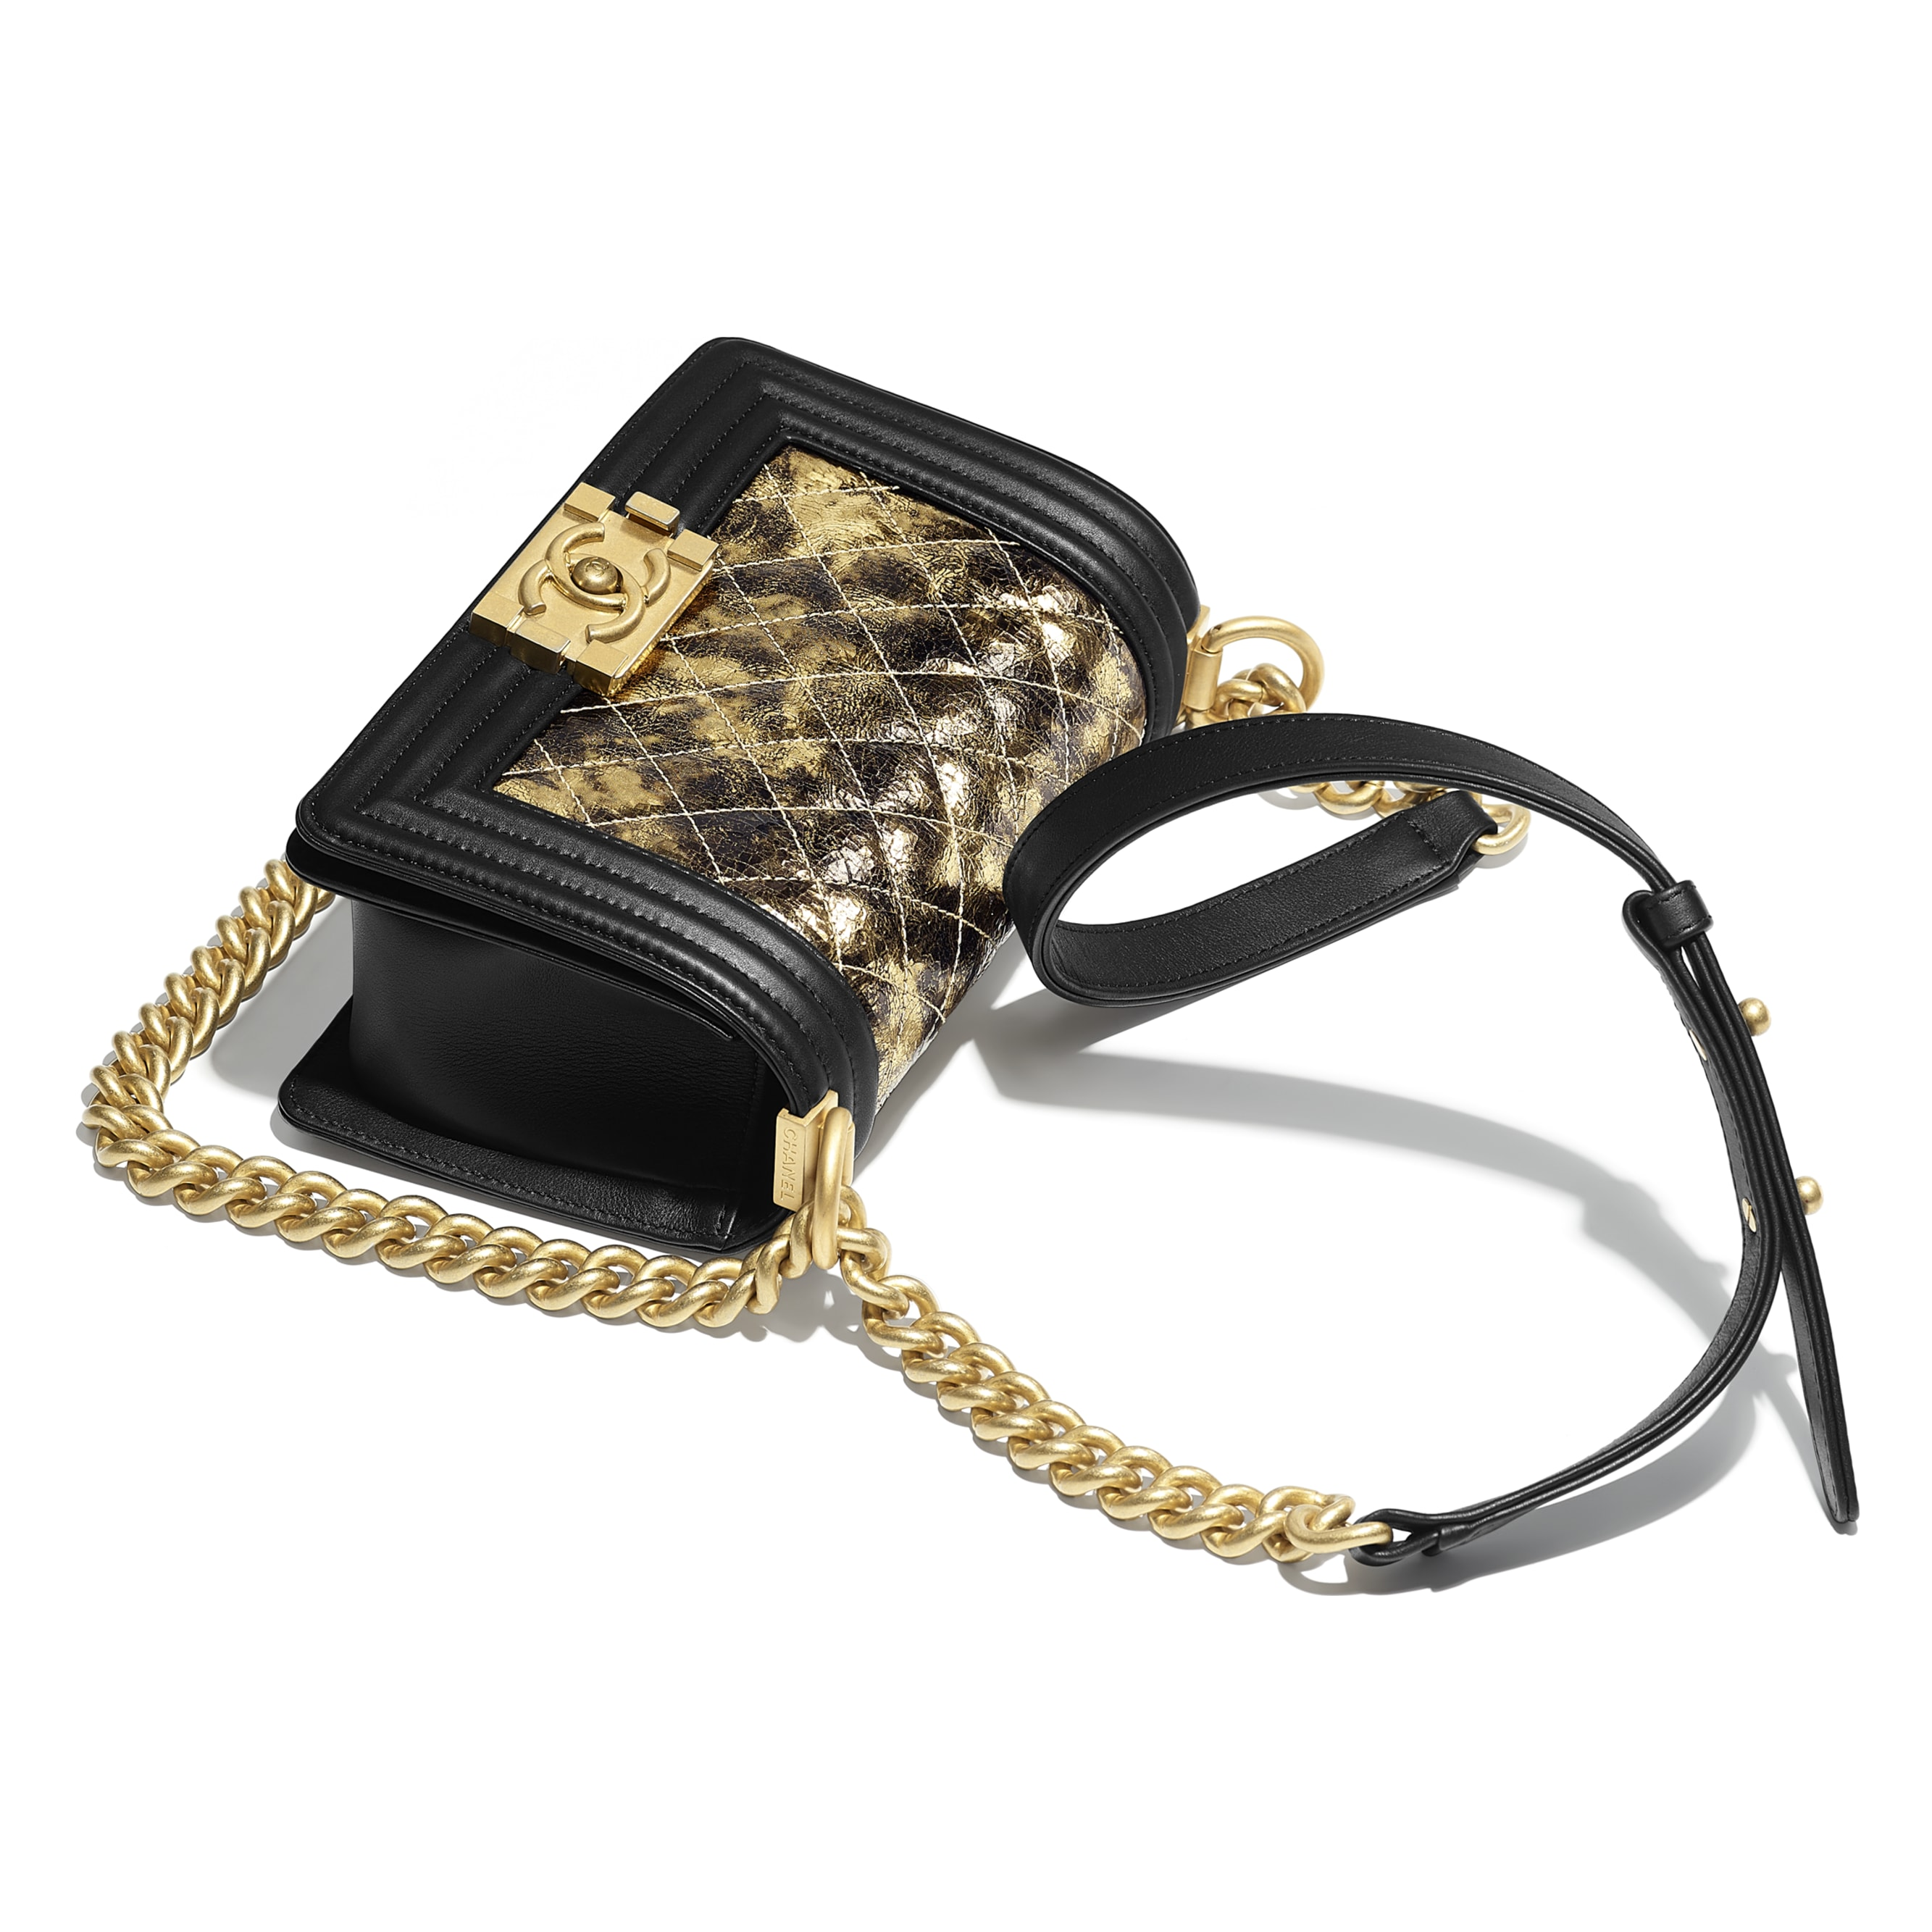 Small BOY CHANEL Handbag - Gold & Black - Metallic Crumpled Goatskin, Calfskin & Gold-Tone Metal - Other view - see standard sized version